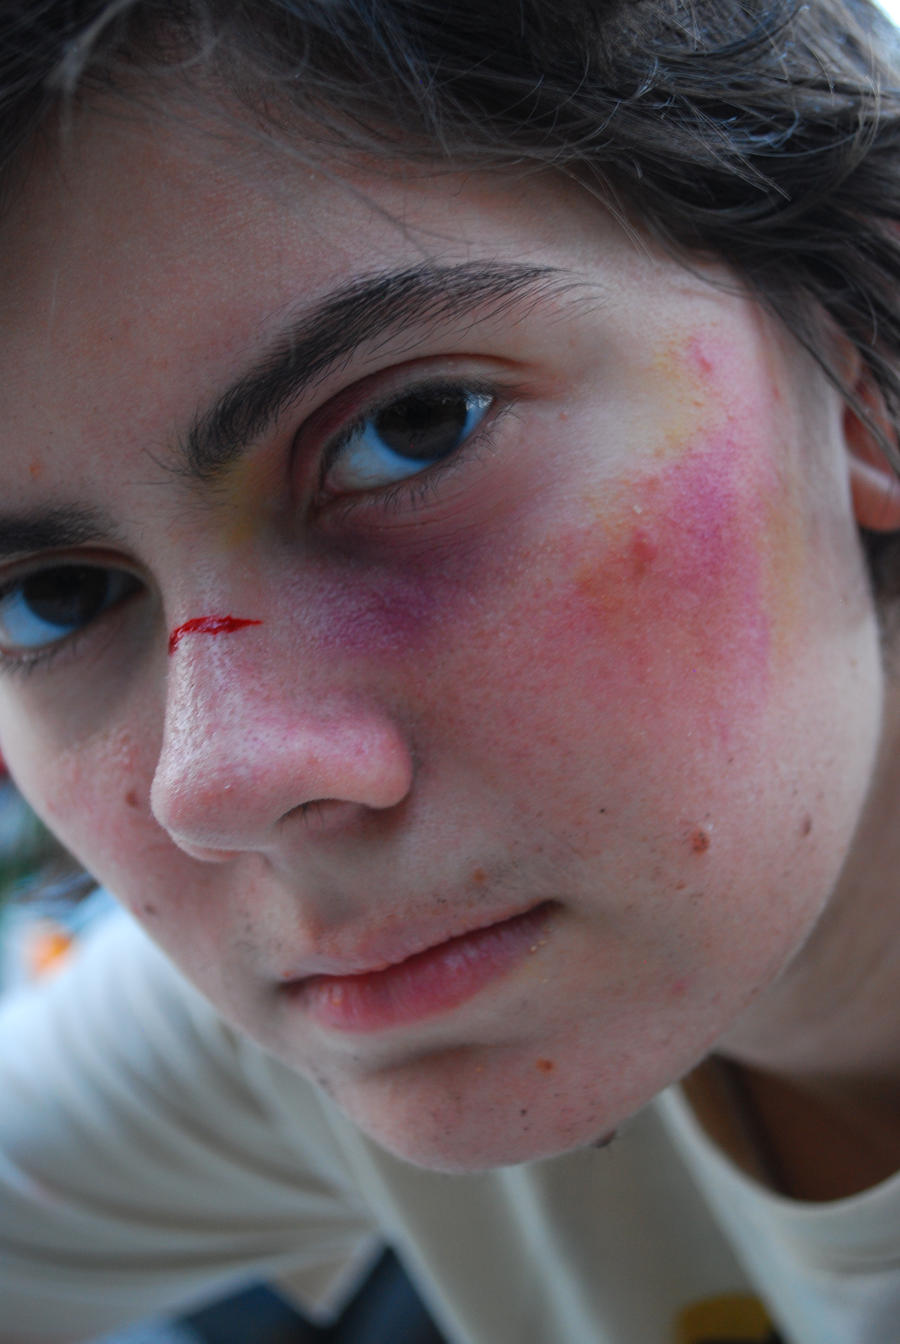 how to get rid of bruises quickly on face